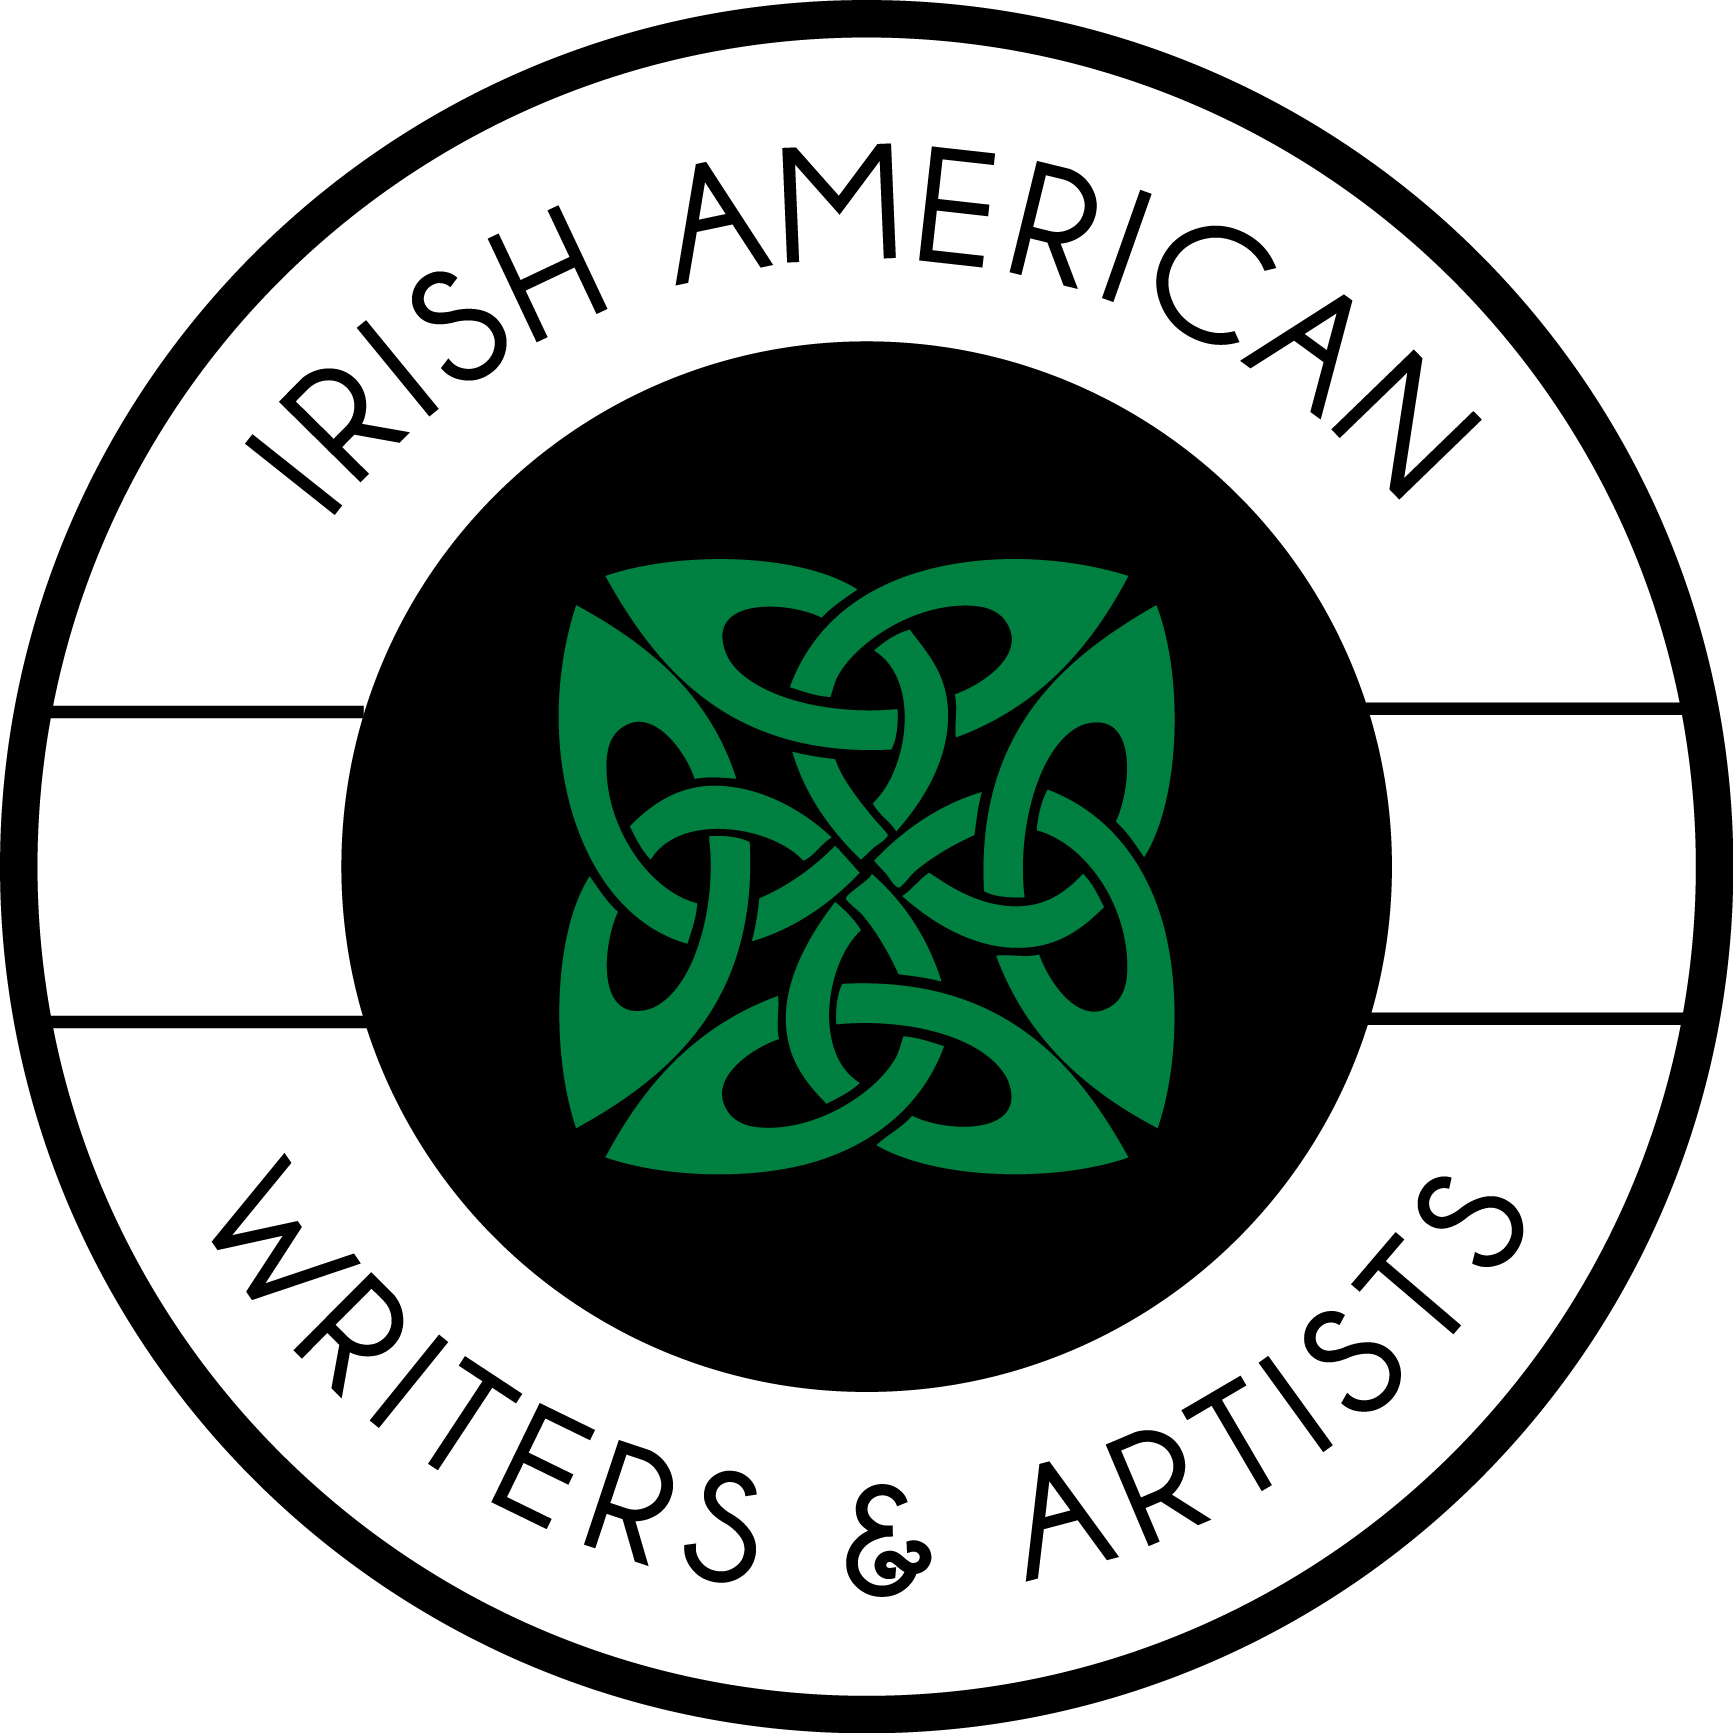 Irish American Writers & Artists logo